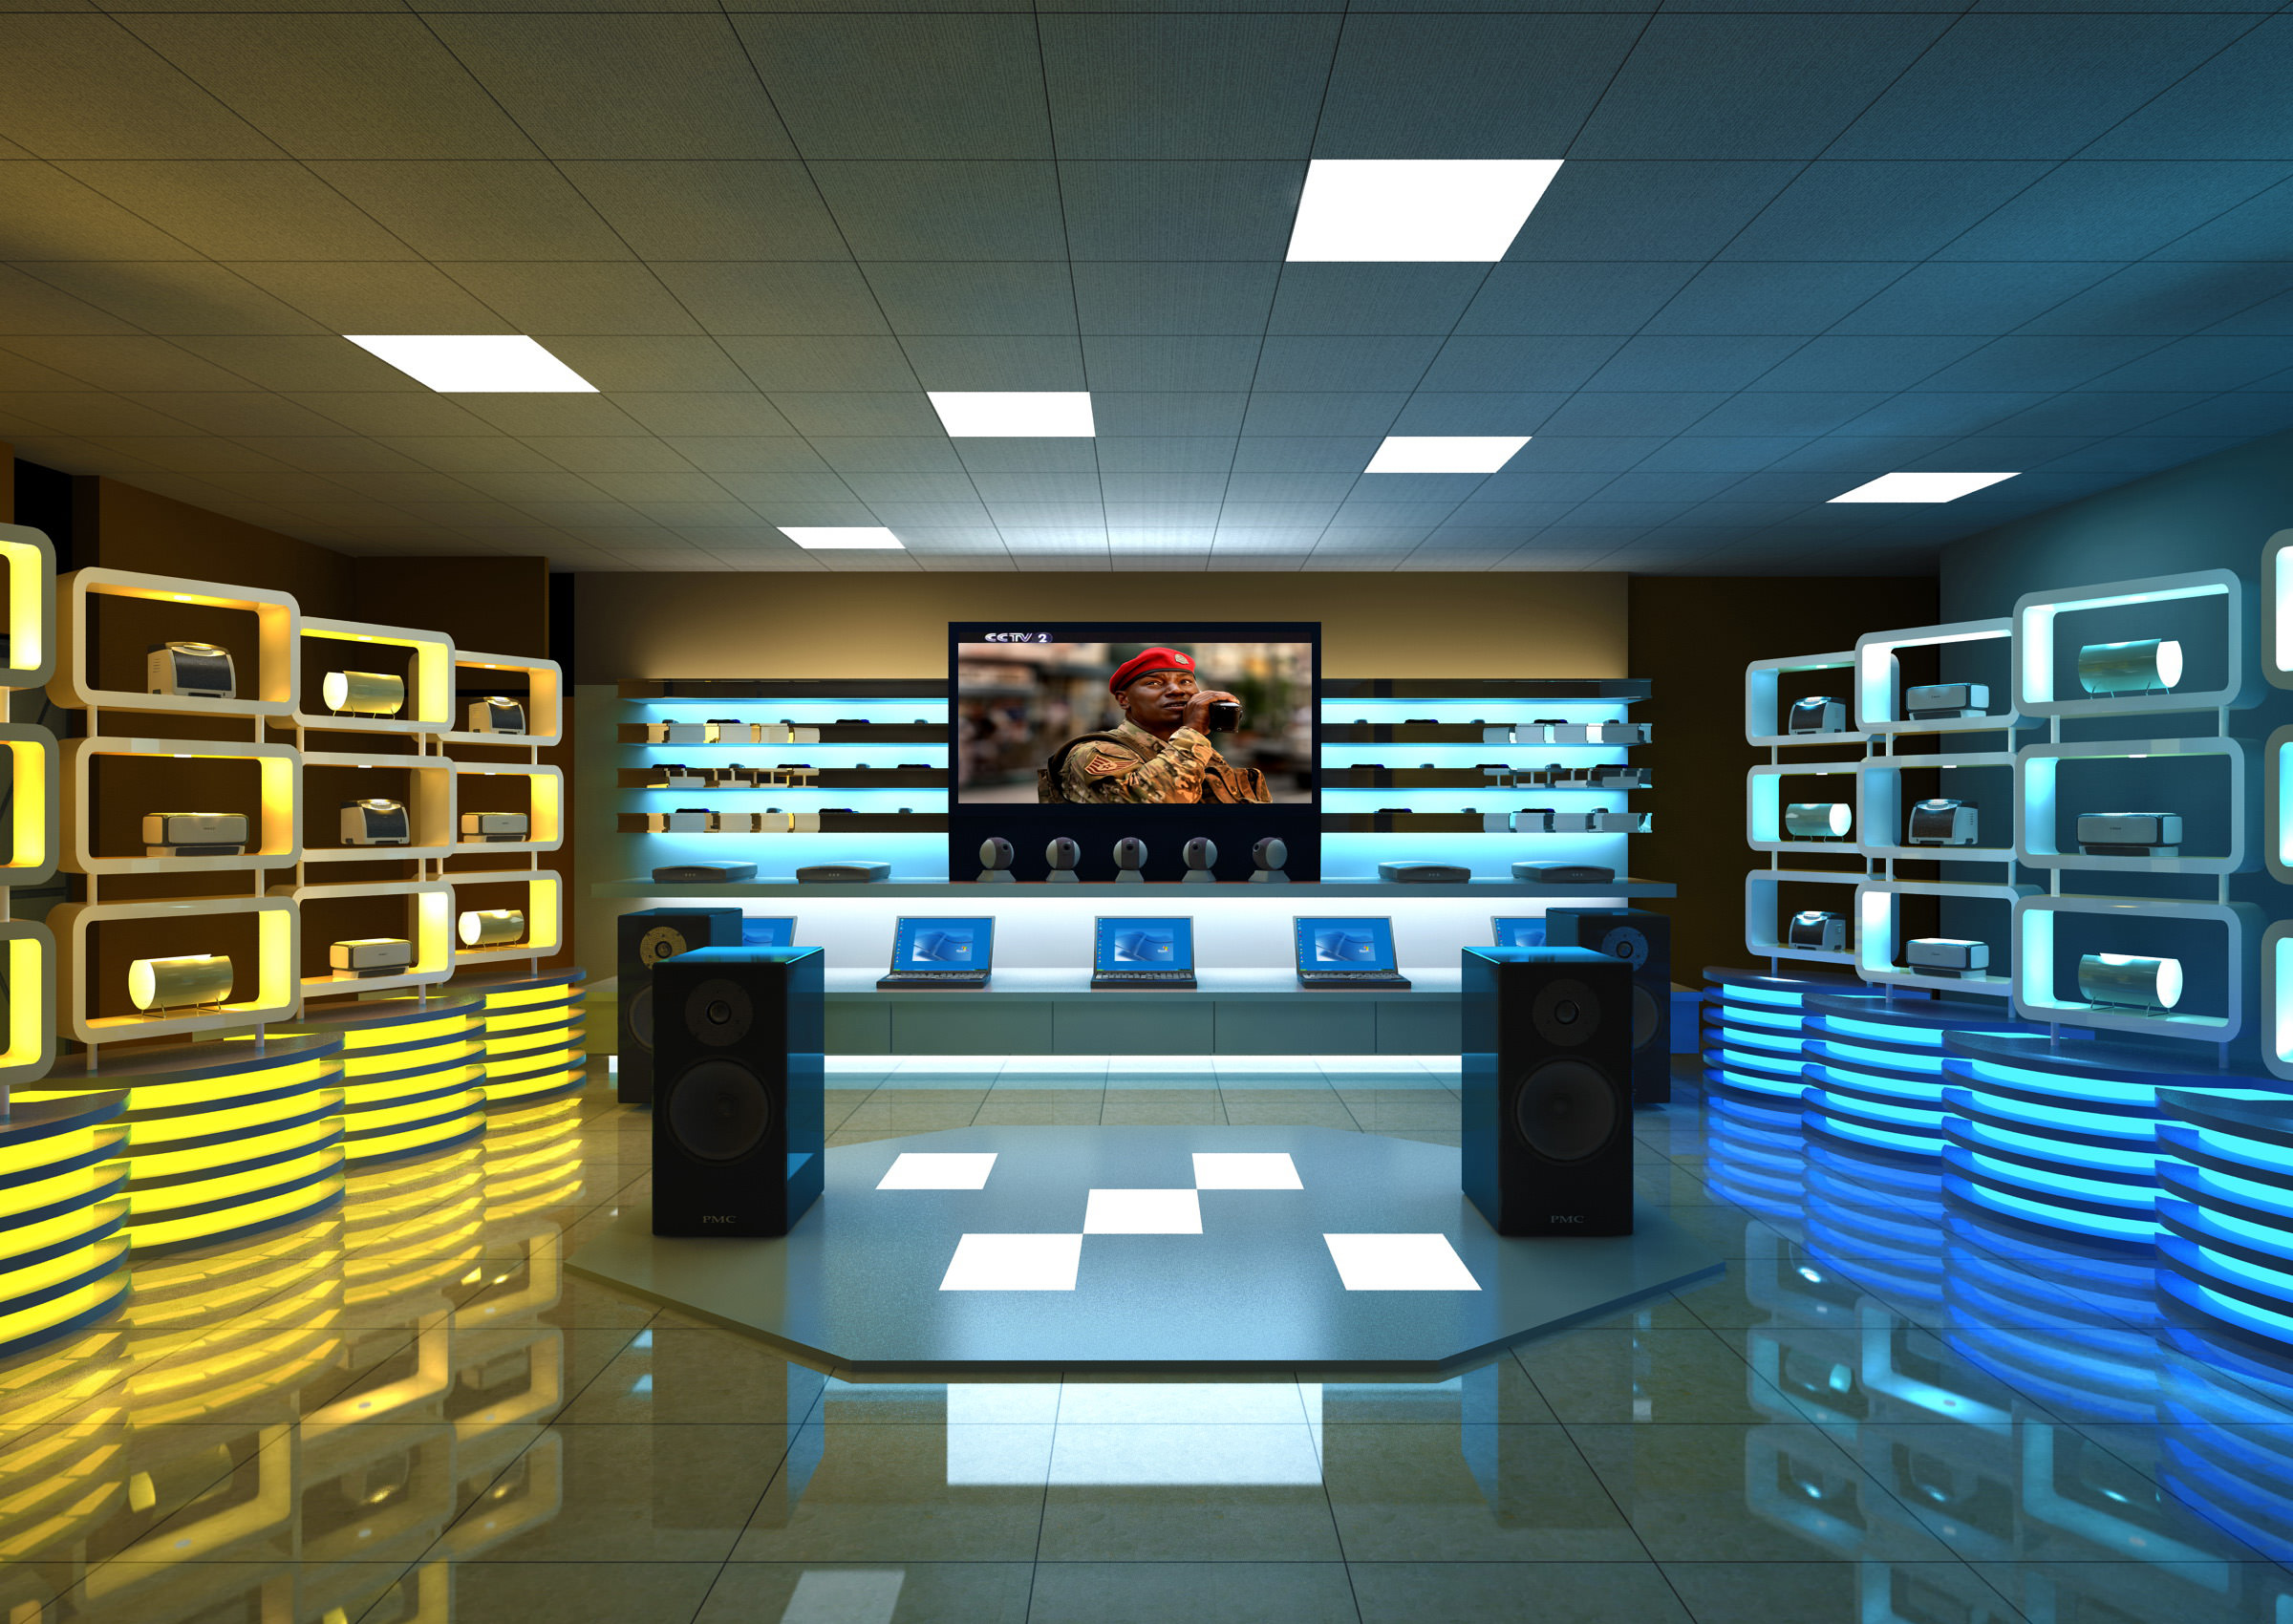 Best Electronic Store Interior Design Ideas Pictures - Amazing ...